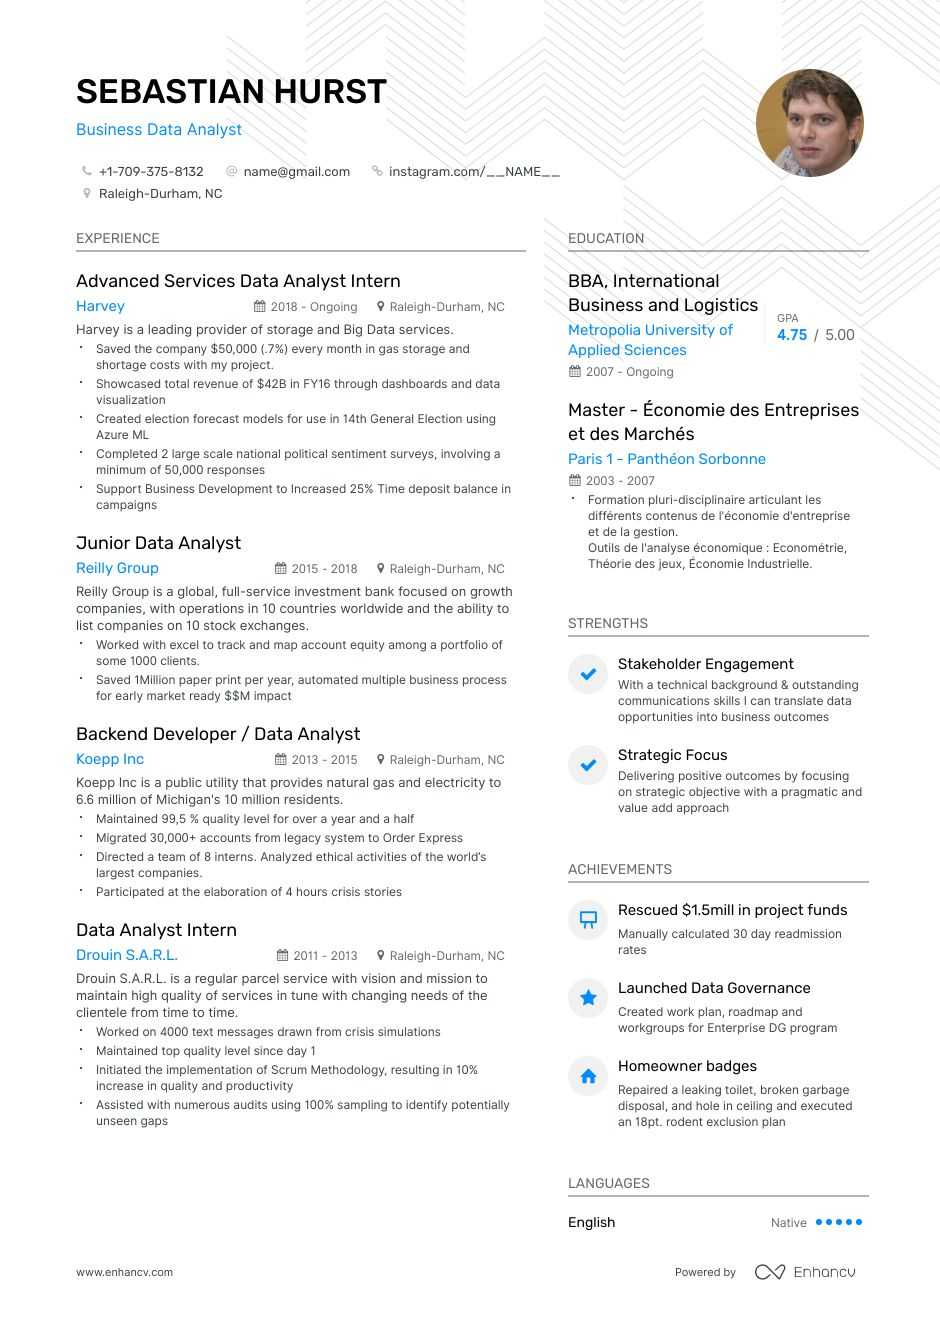 top business data analyst resume examples expert tips enhancv migration summary college Resume Data Migration Business Analyst Resume